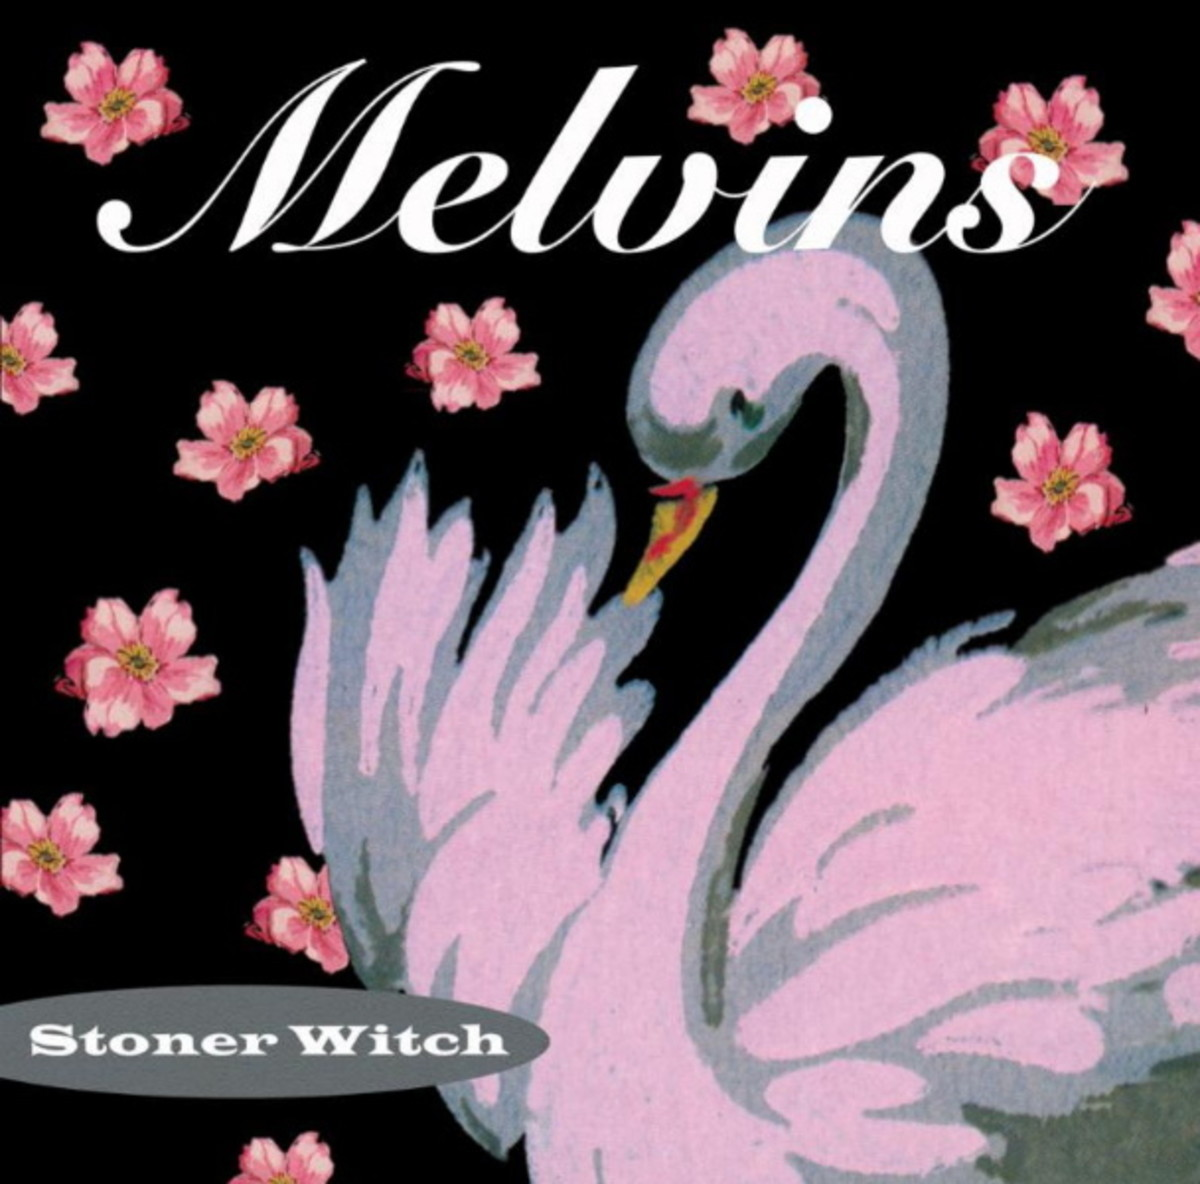 """Stoner Witch"" by Melvins"